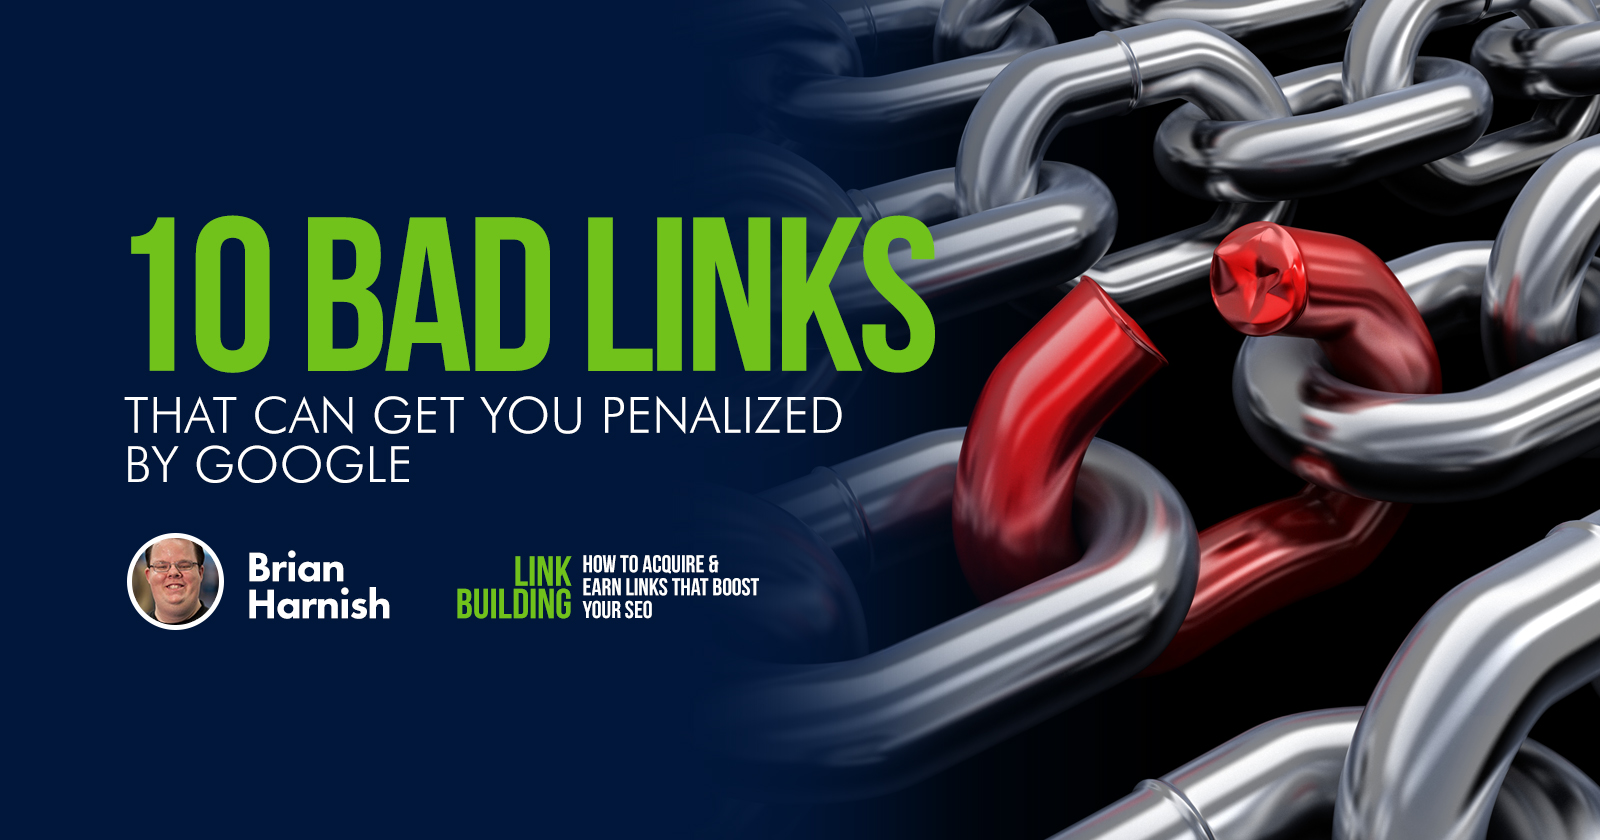 10 Bad Links That Can Get You Penalized by Google via @BrianHarnish